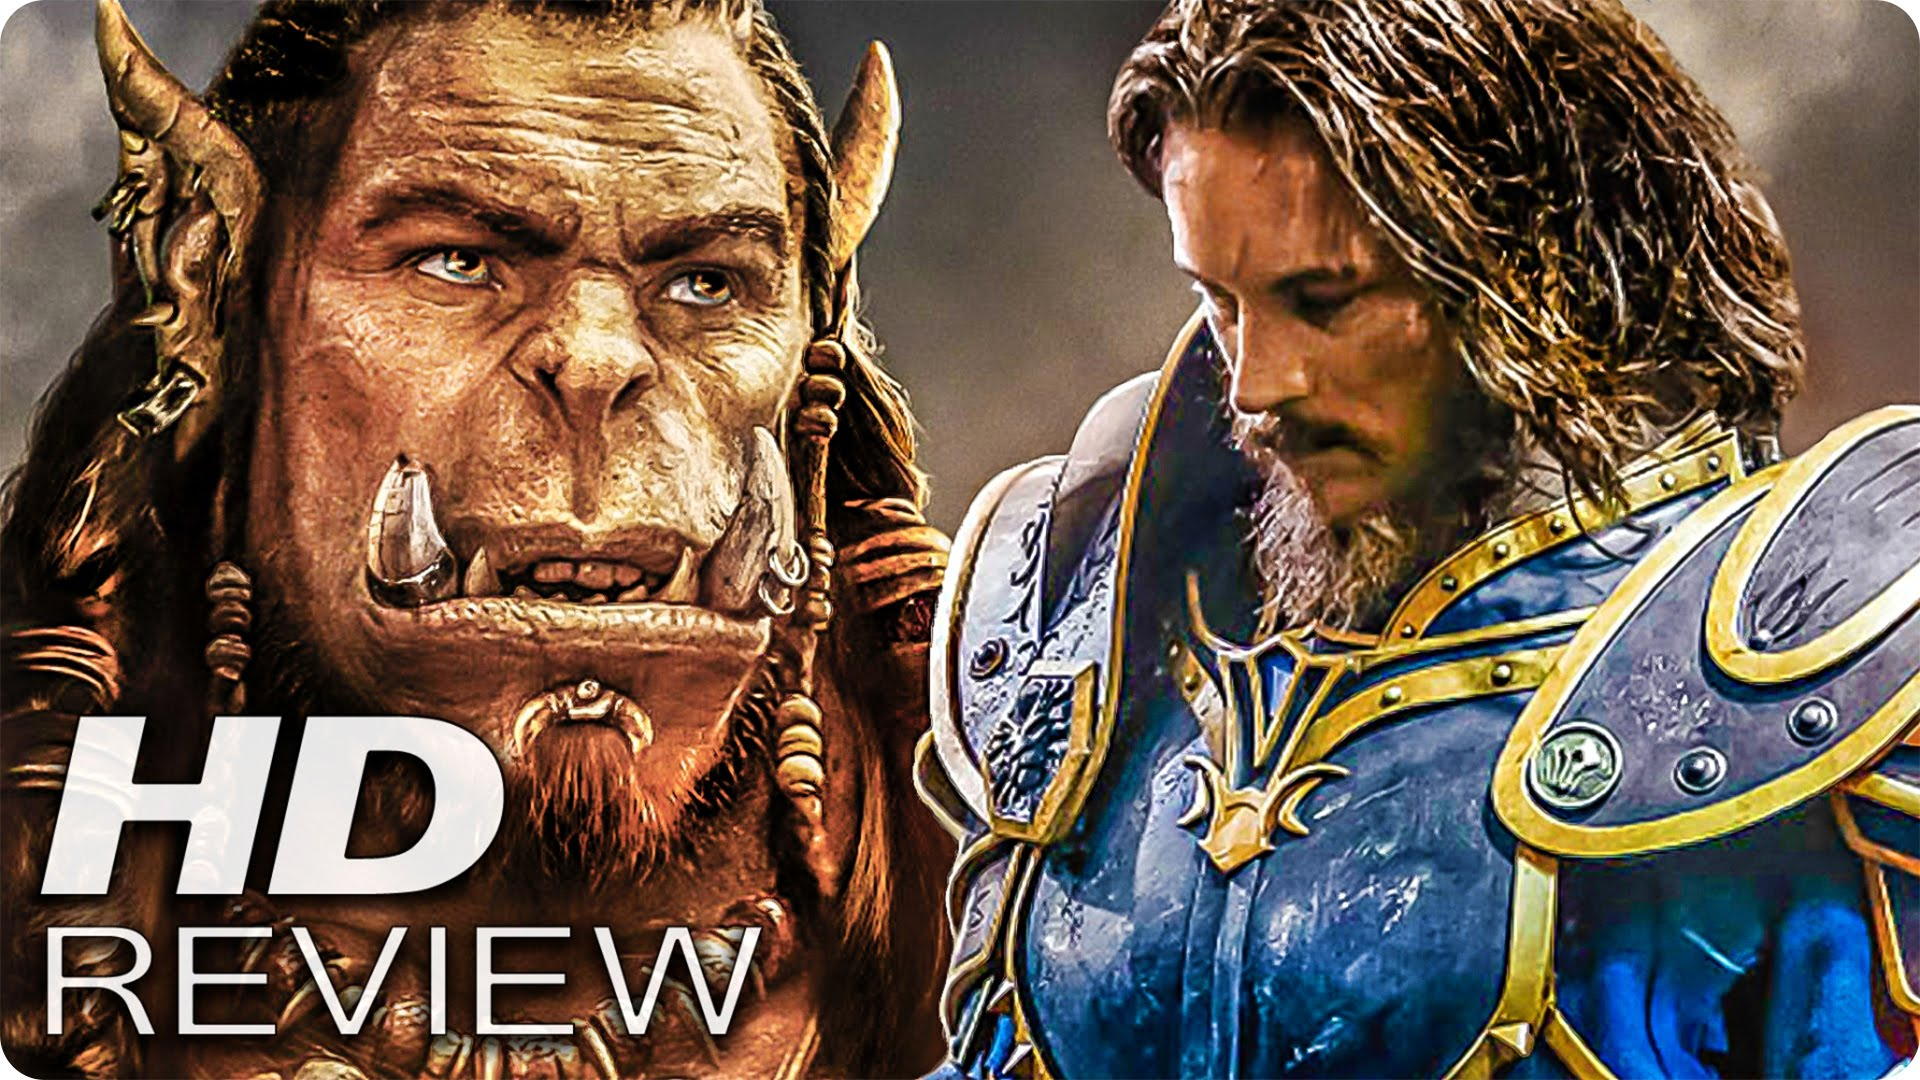 WARCRAFT: THE BEGINNING Kritik Review & Trailer Deutsch German (2016)